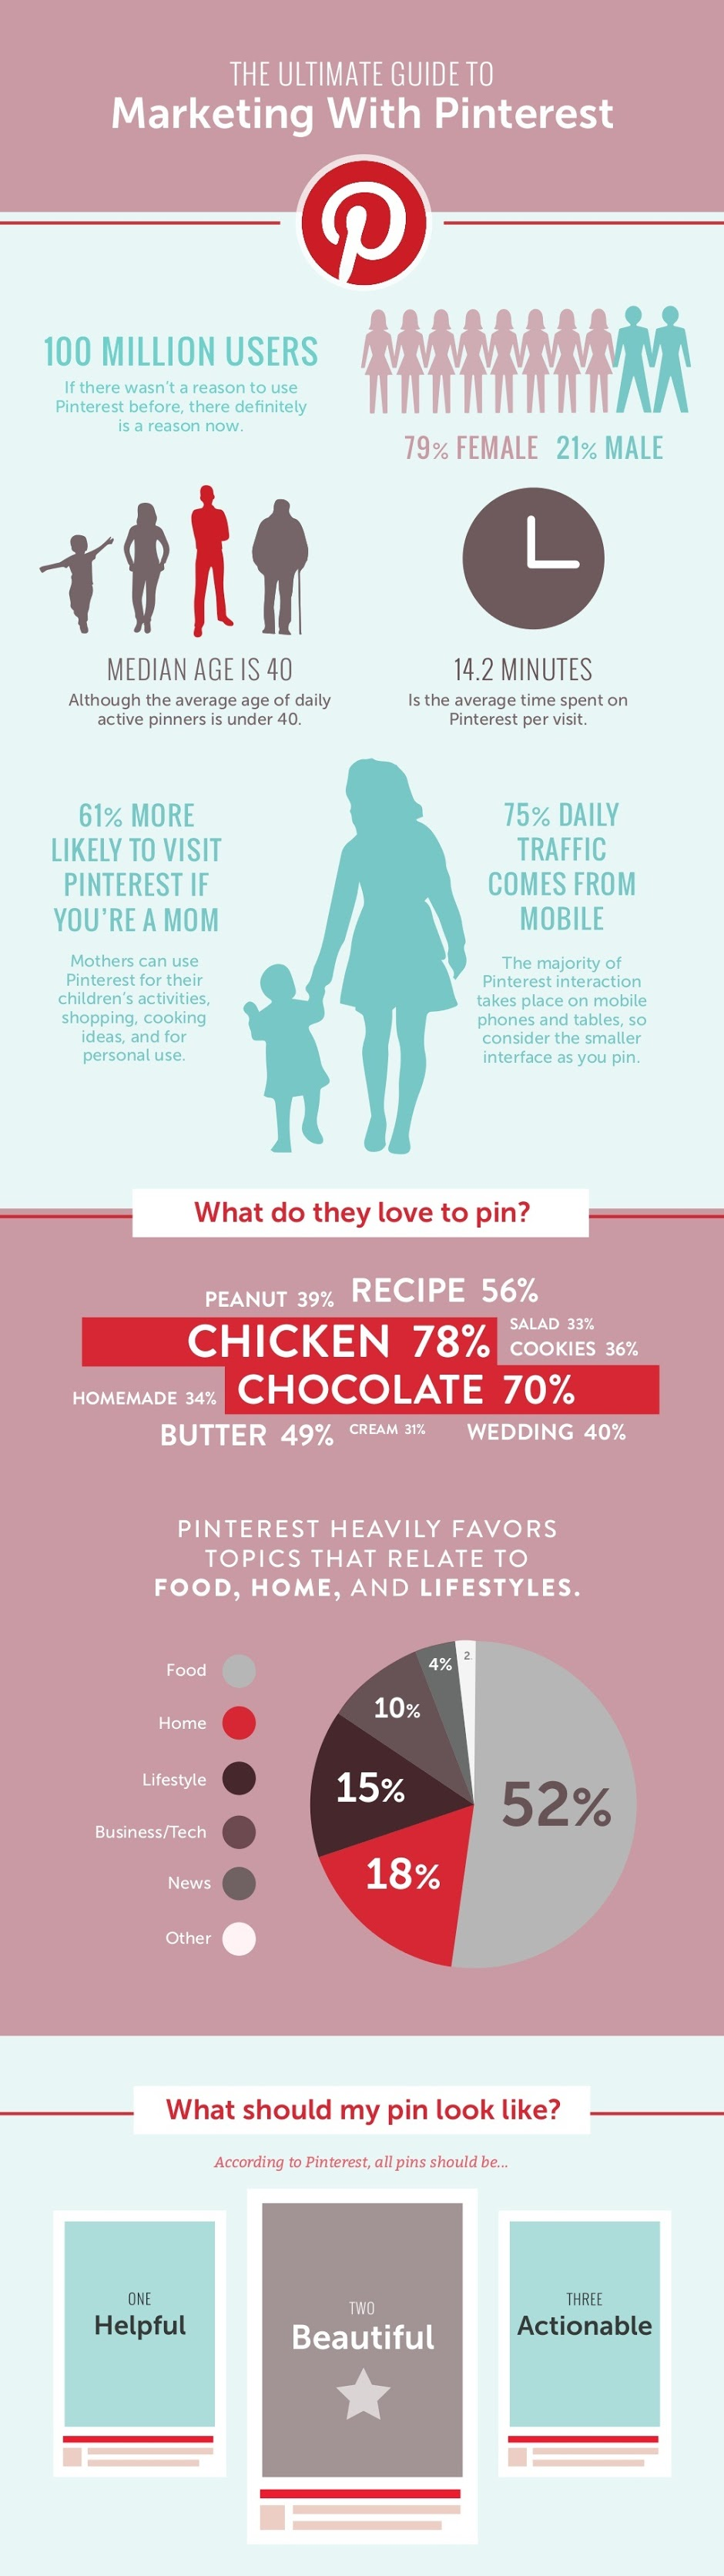 the-ultimate-guide-on-how-to-use-pinterest-for-marketing-infographic